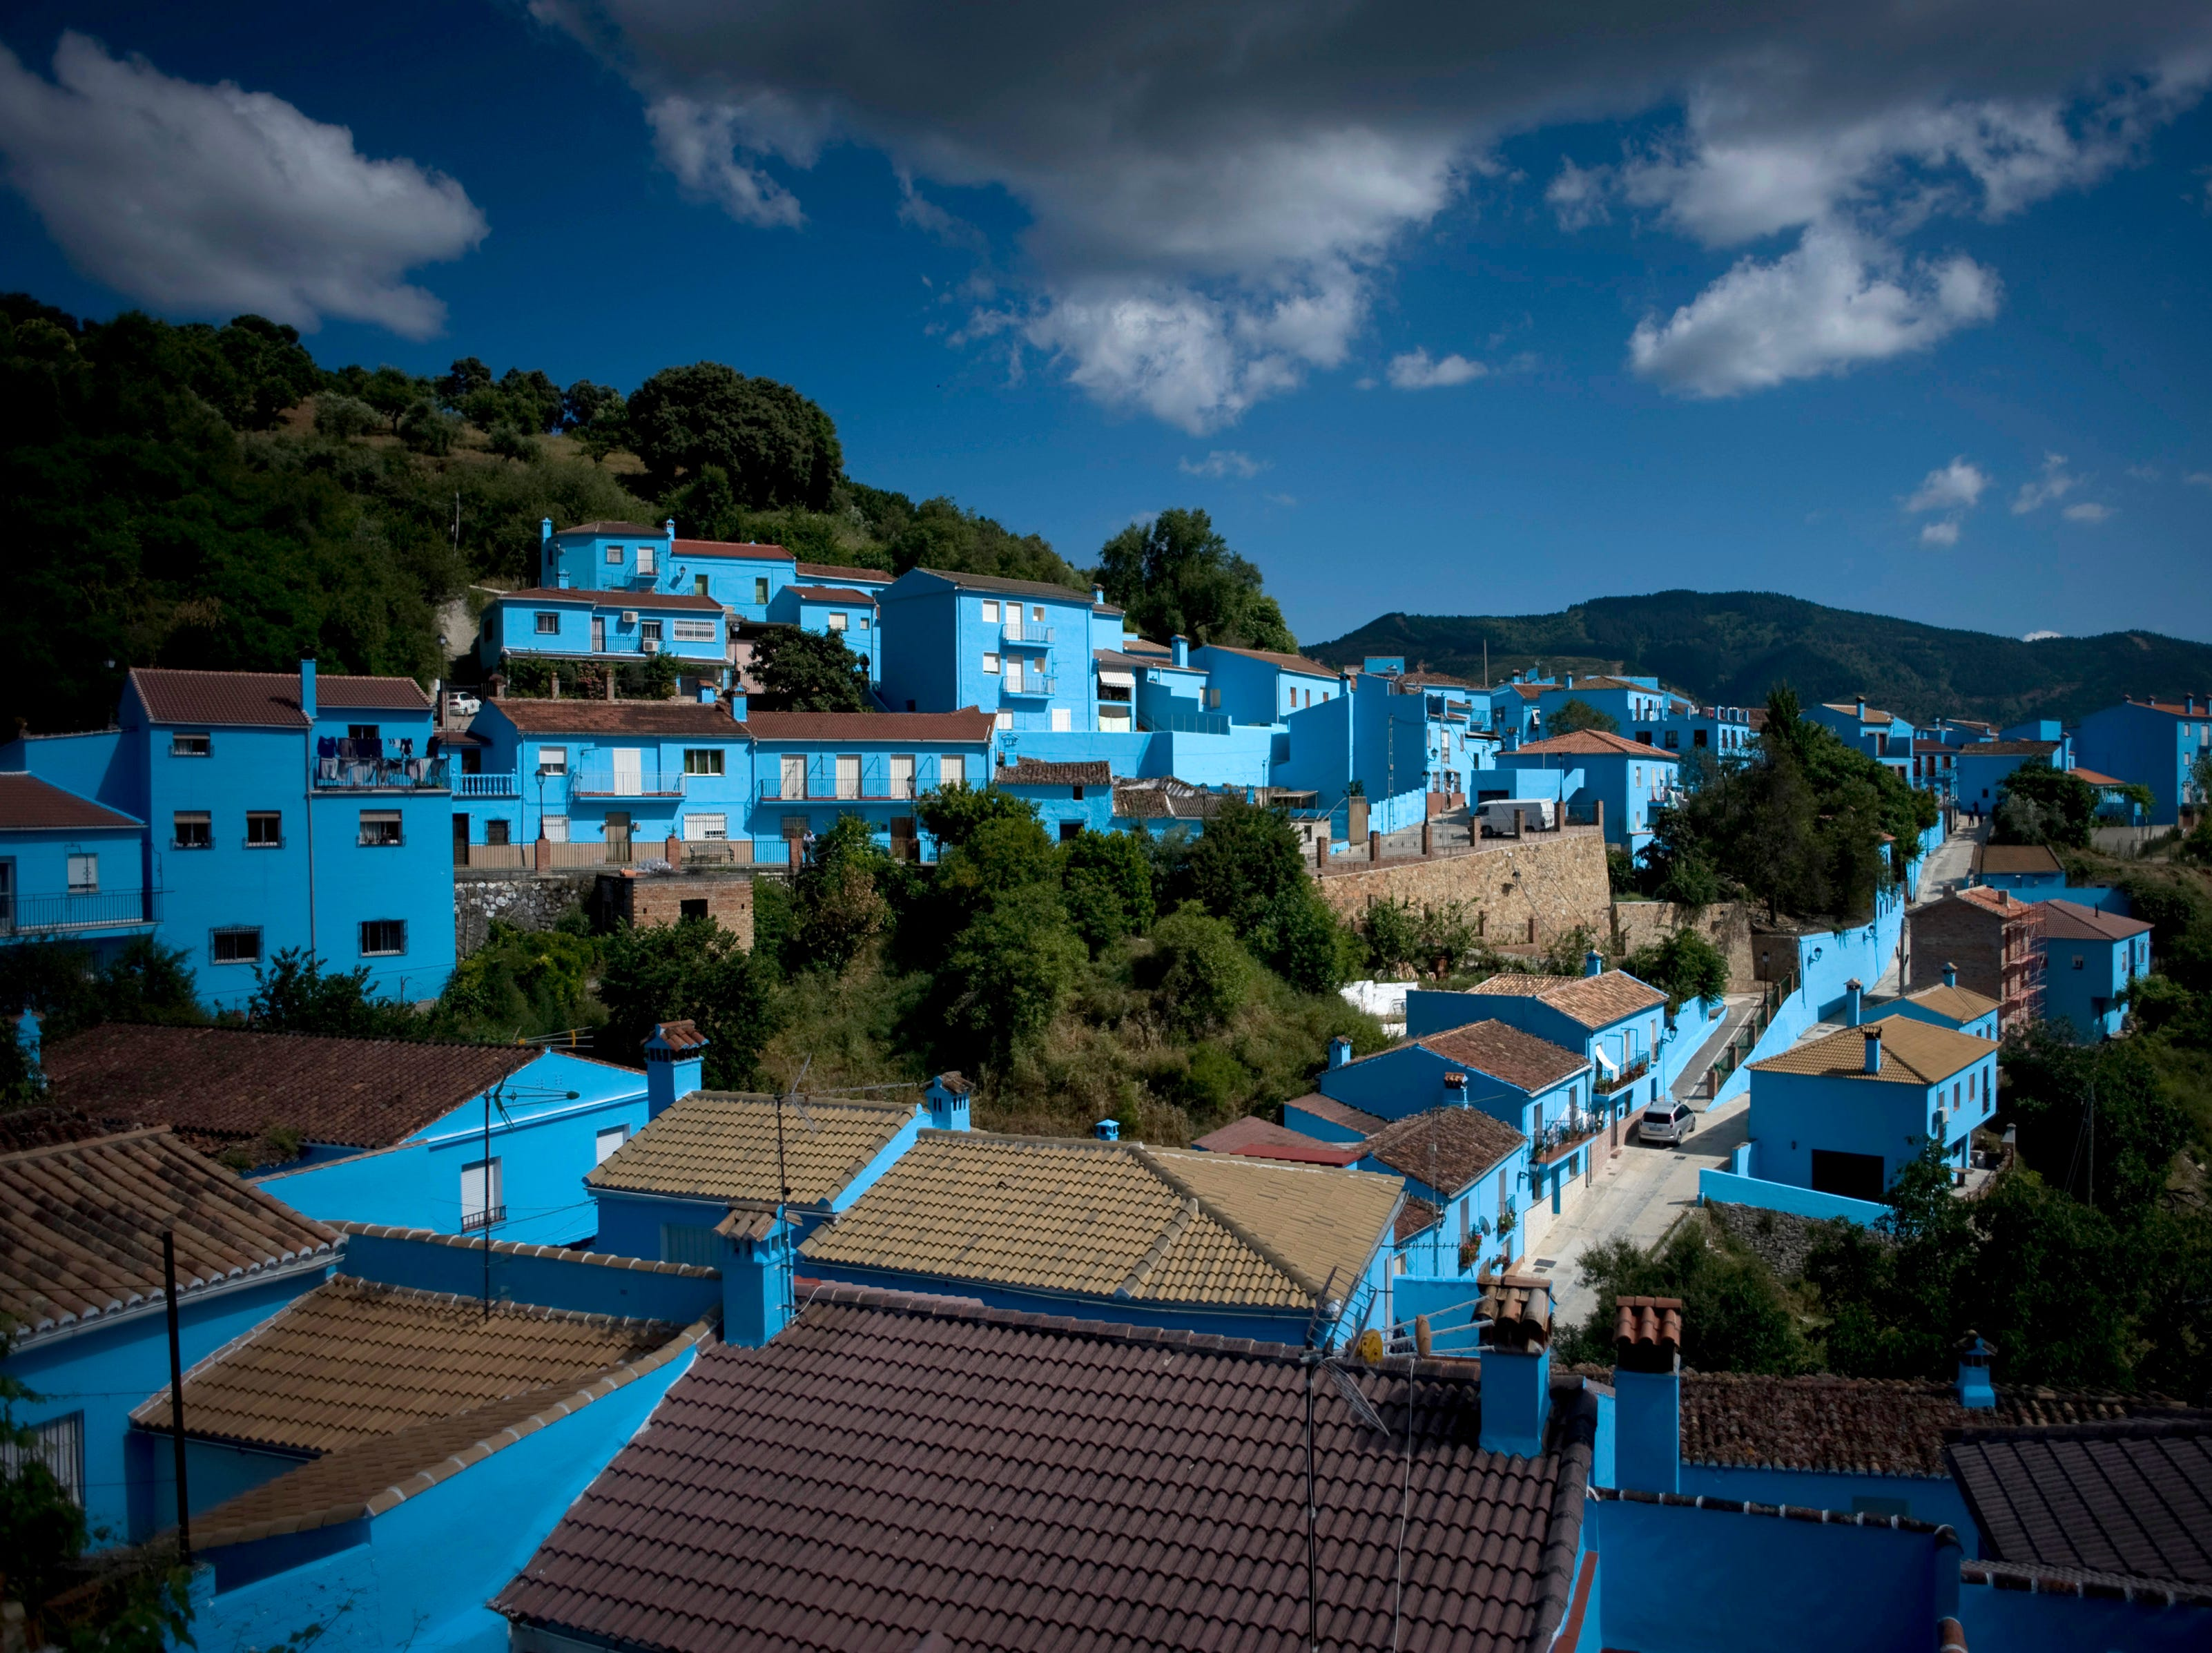 General view of the village of Juzcar taken on June 10, 2011 in Juzcar near Malaga, southern Spain. The facades of the houses of Juzcar are being painted blue after Sony chose the village to present the world premiere of the movie The Smurfs 3D. AFP PHOTO / JORGE GUERRERO (Photo credit should read Jorge Guerrero/AFP/Getty Images) ORIG FILE ID: SPAIN-CINEMA-SMURFS